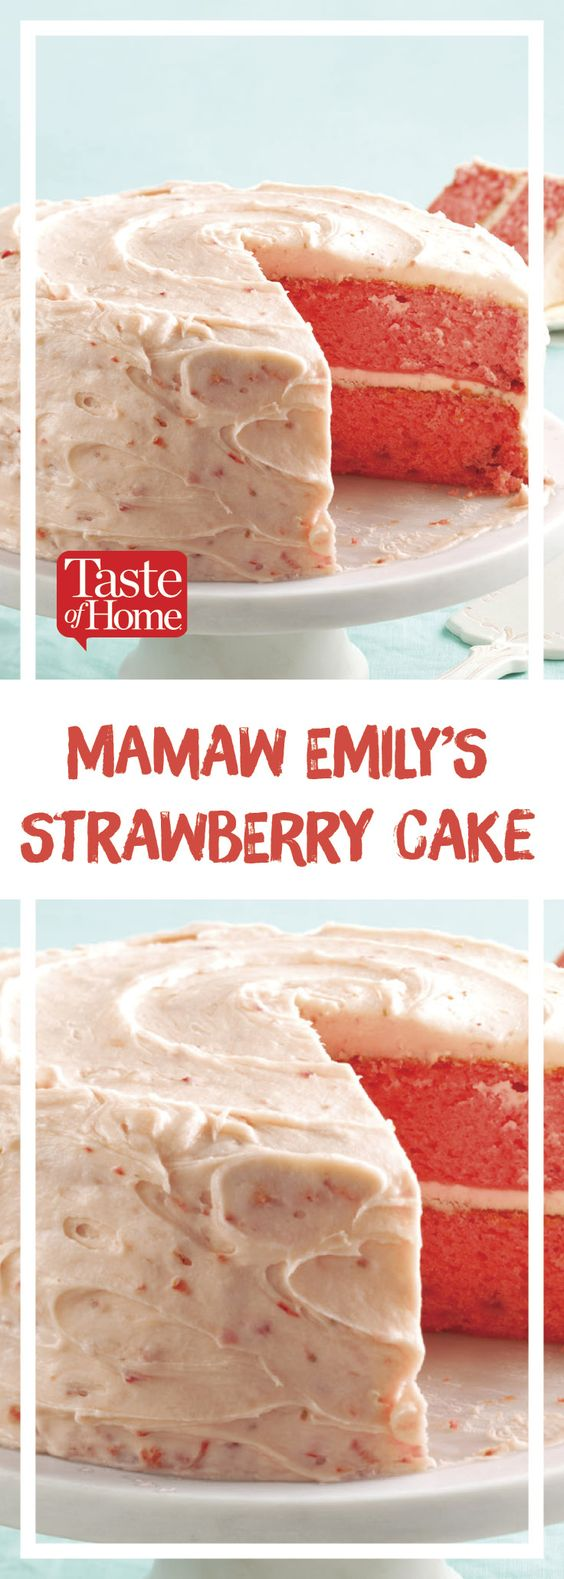 Mamaw Emily's Strawberry Cake #strawberry #cake #cakerecipes #dessert #dessertrecipes #easydessertrecipes